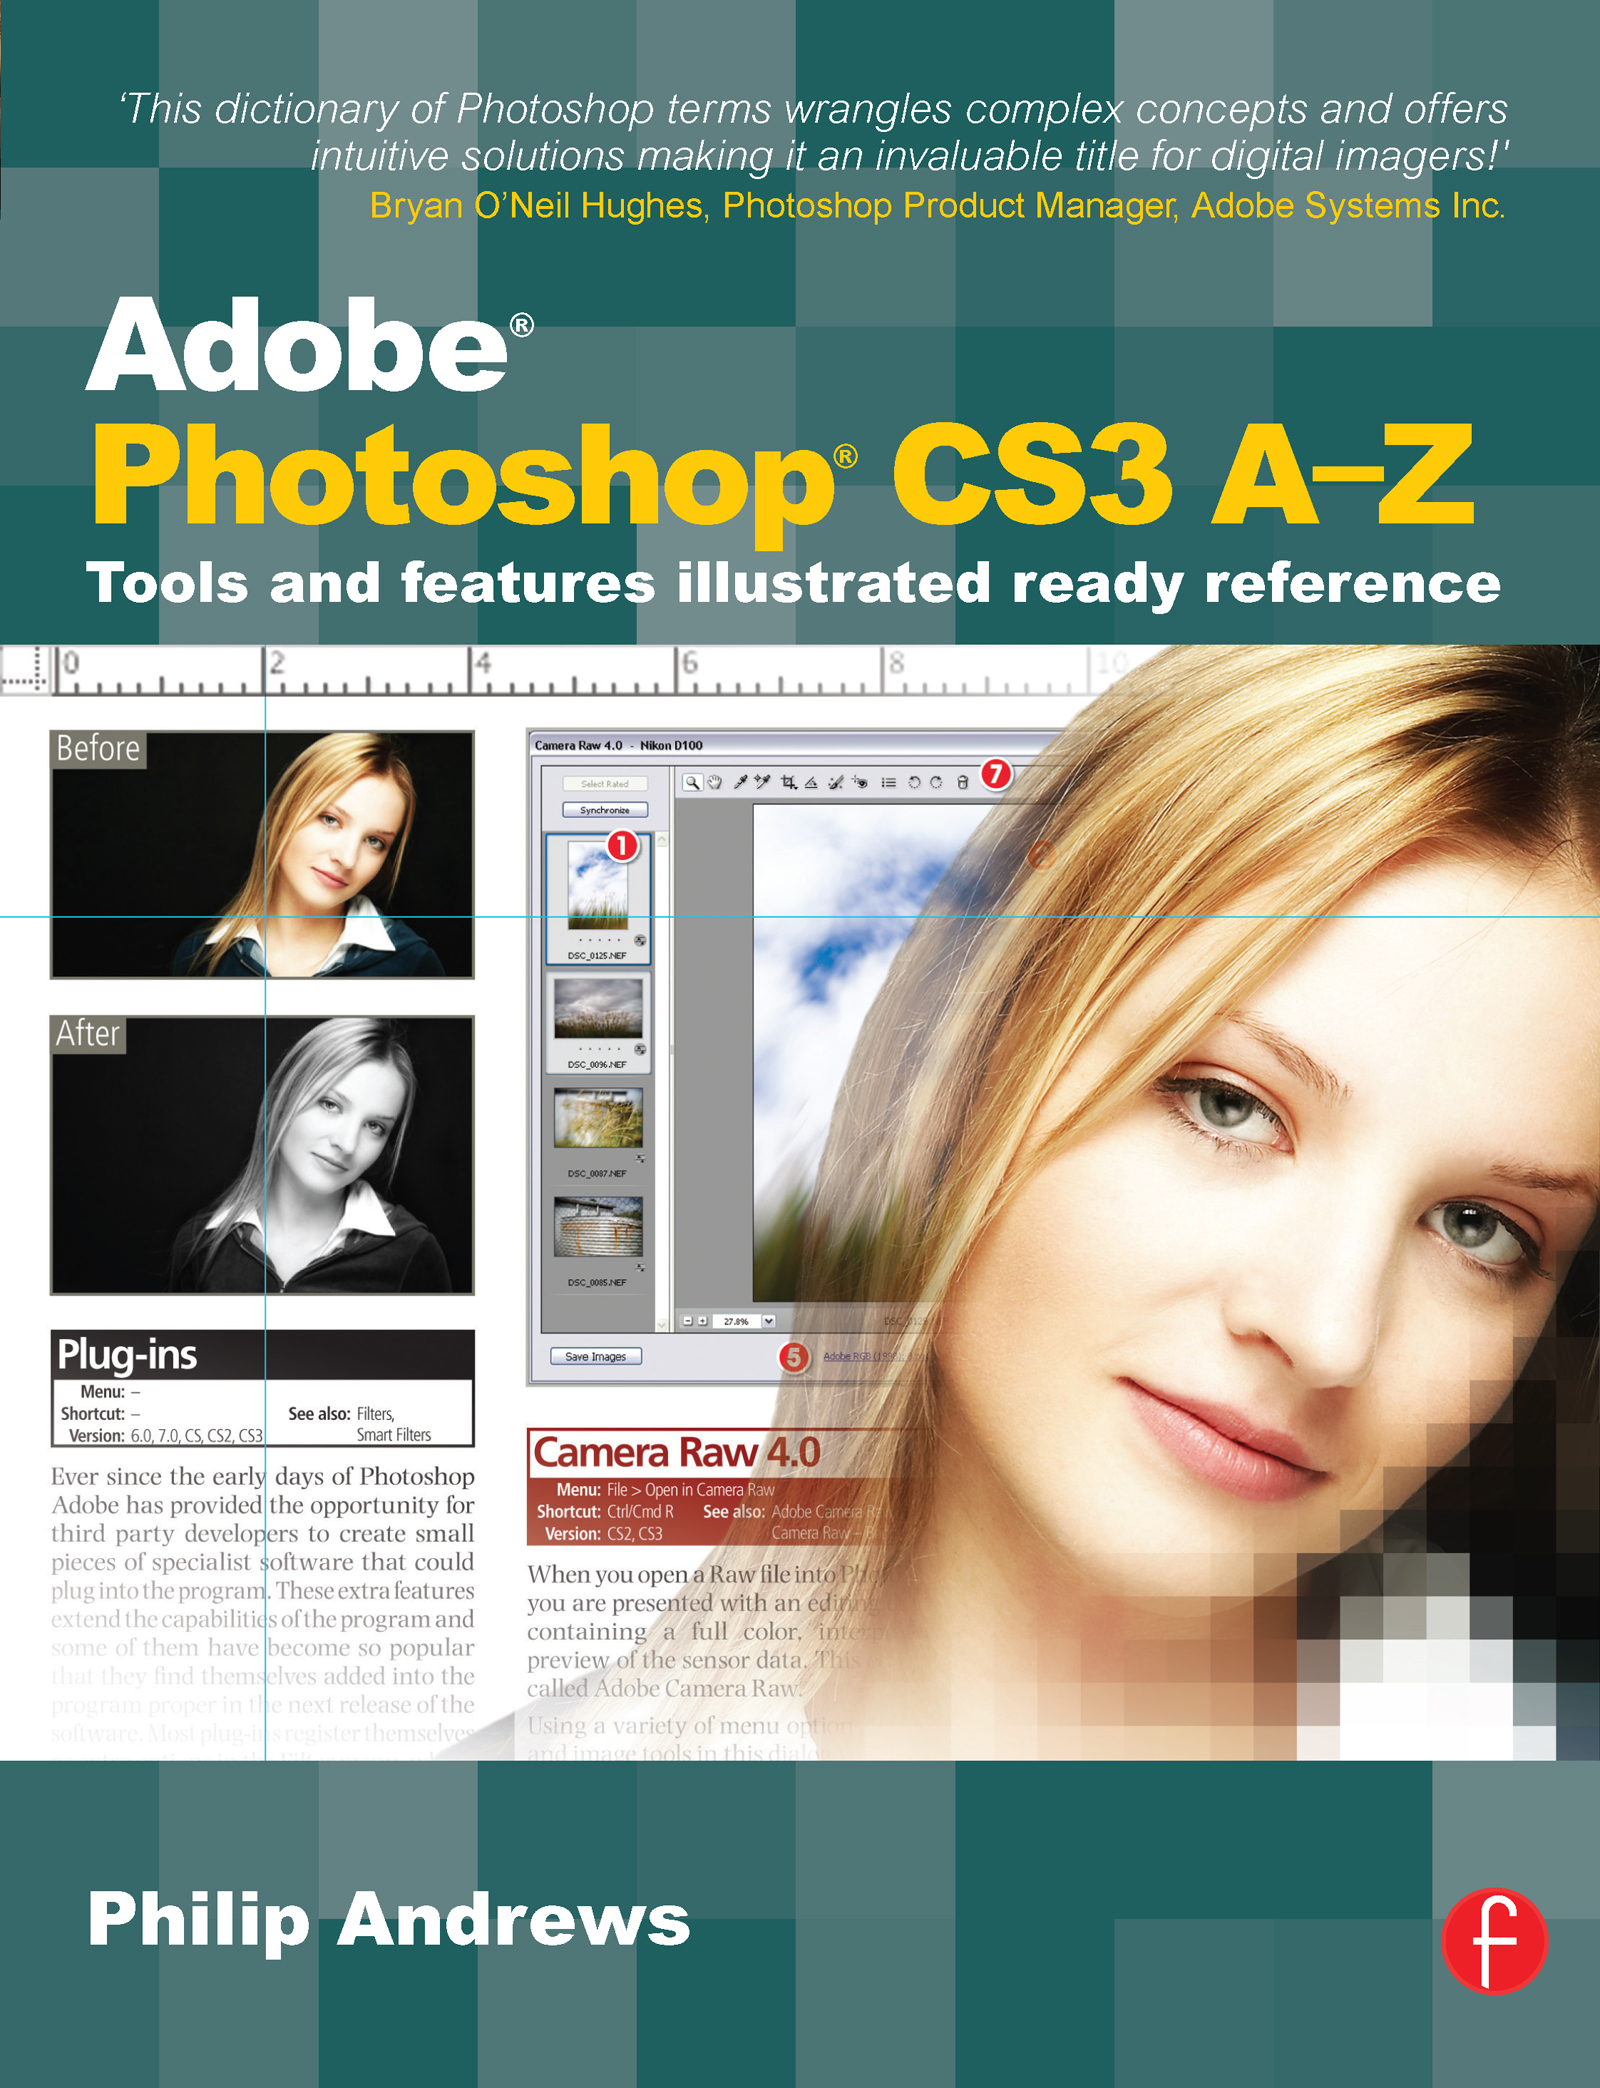 Adobe Photoshop CS3 A-Z: Tools and features illustrated ready reference book cover